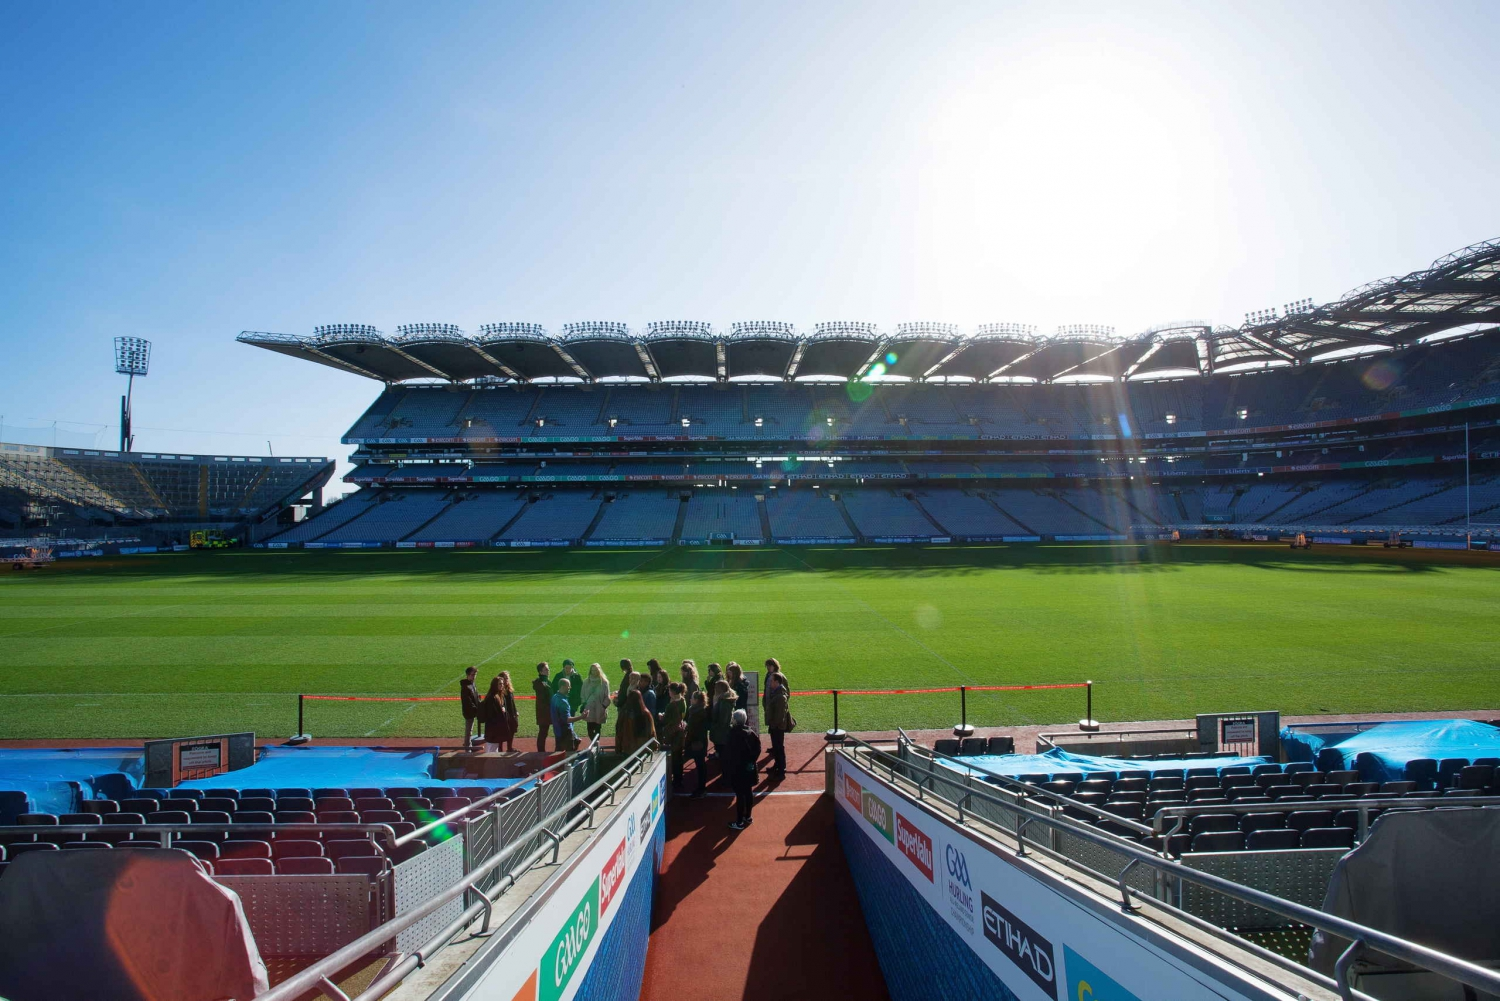 1.5–Hour Croke Park Tour and GAA Museum